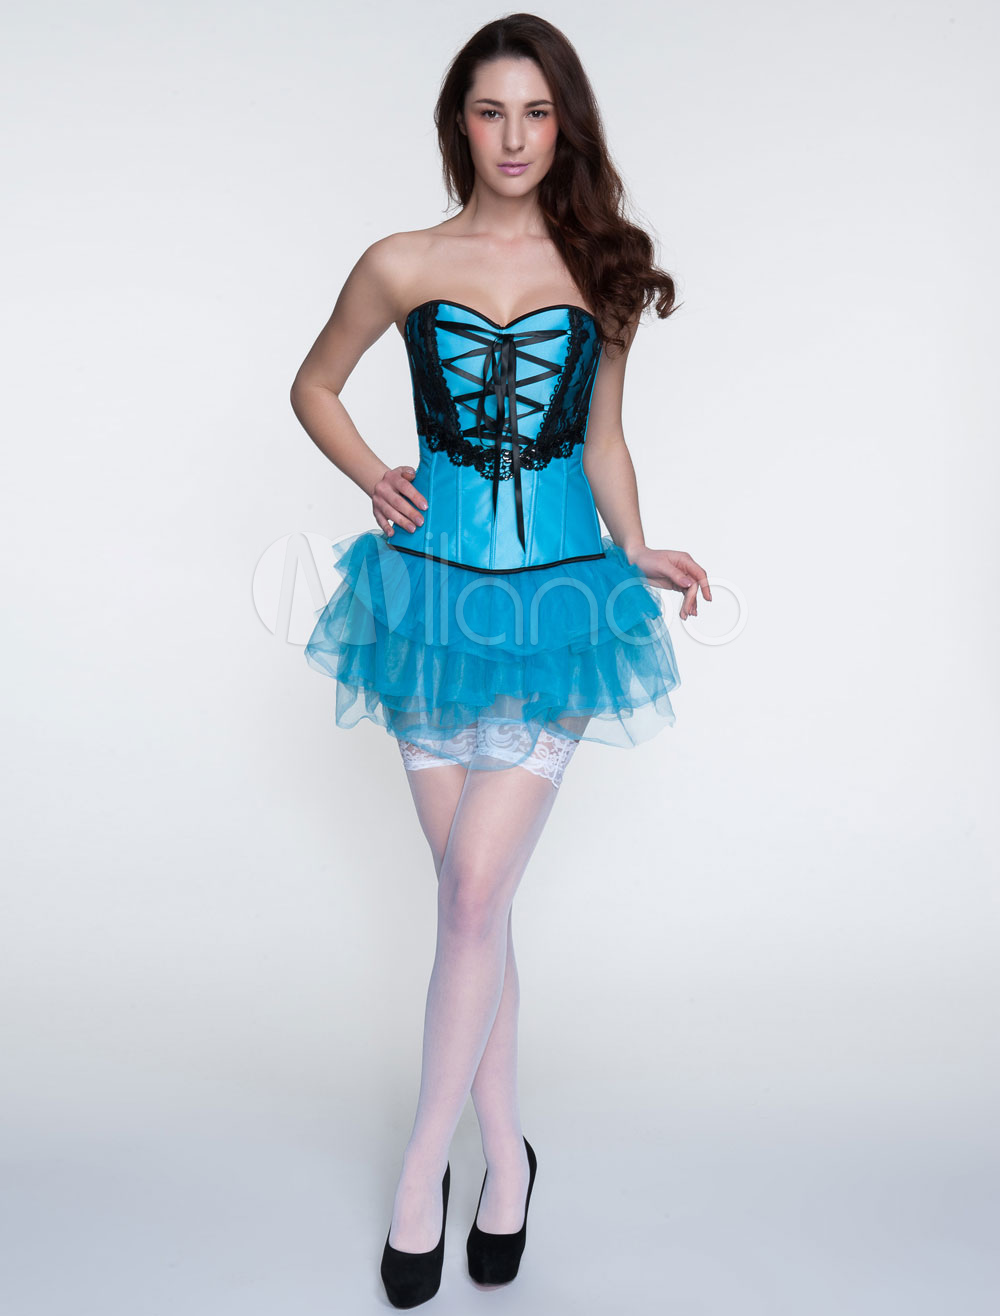 Buy Blue Corset Outfits 2 Piece Pleated Mini Skirt And Sweetheart Lace Up Corset Tops for $27.99 in Milanoo store